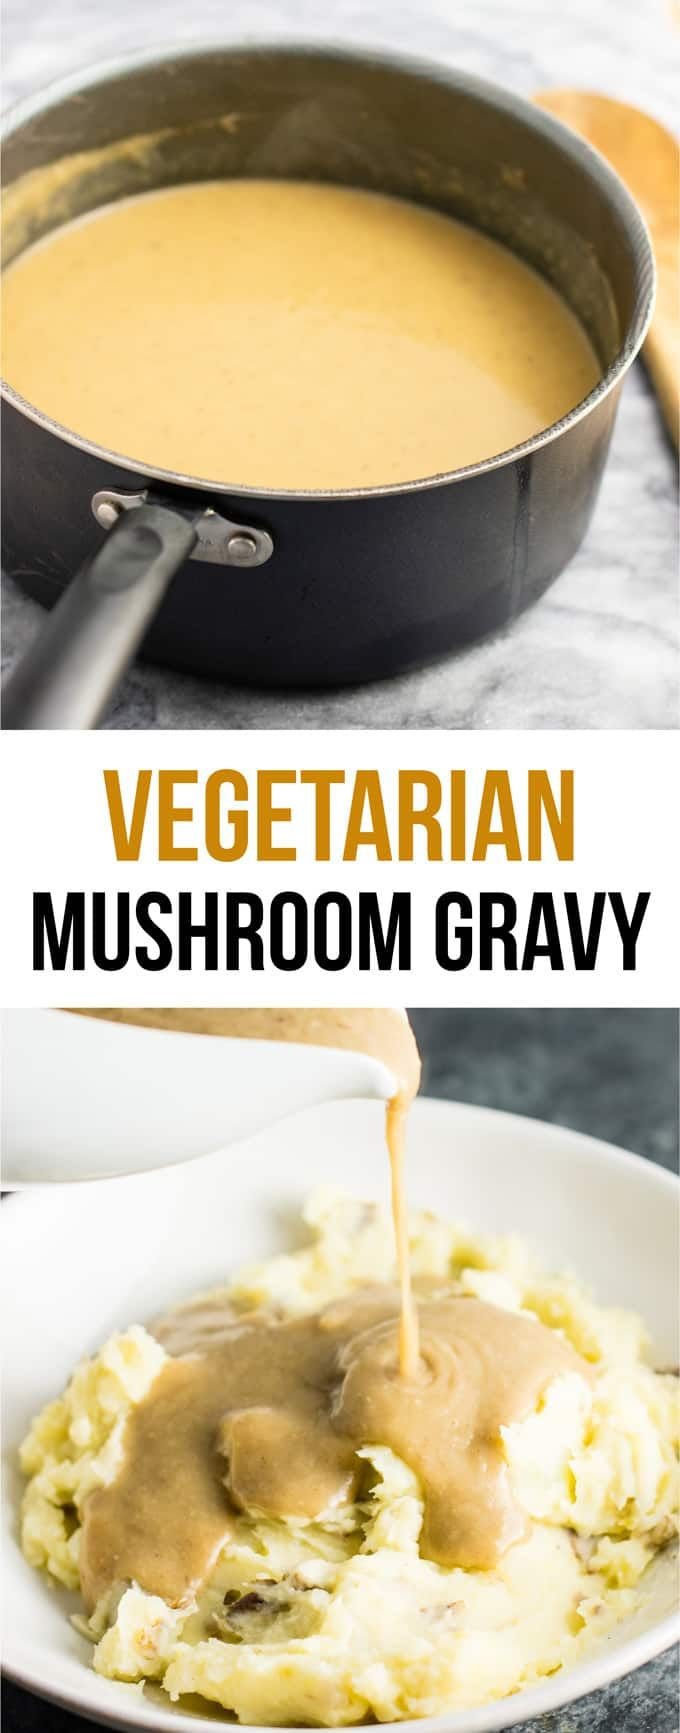 Vegetarian Gravy Recipe This Is The Best Gravy I Have Ever Had With Or Wi Vegetarian Thanksgiving Recipes Vegan Thanksgiving Recipes Vegetarian Gravy Recipe